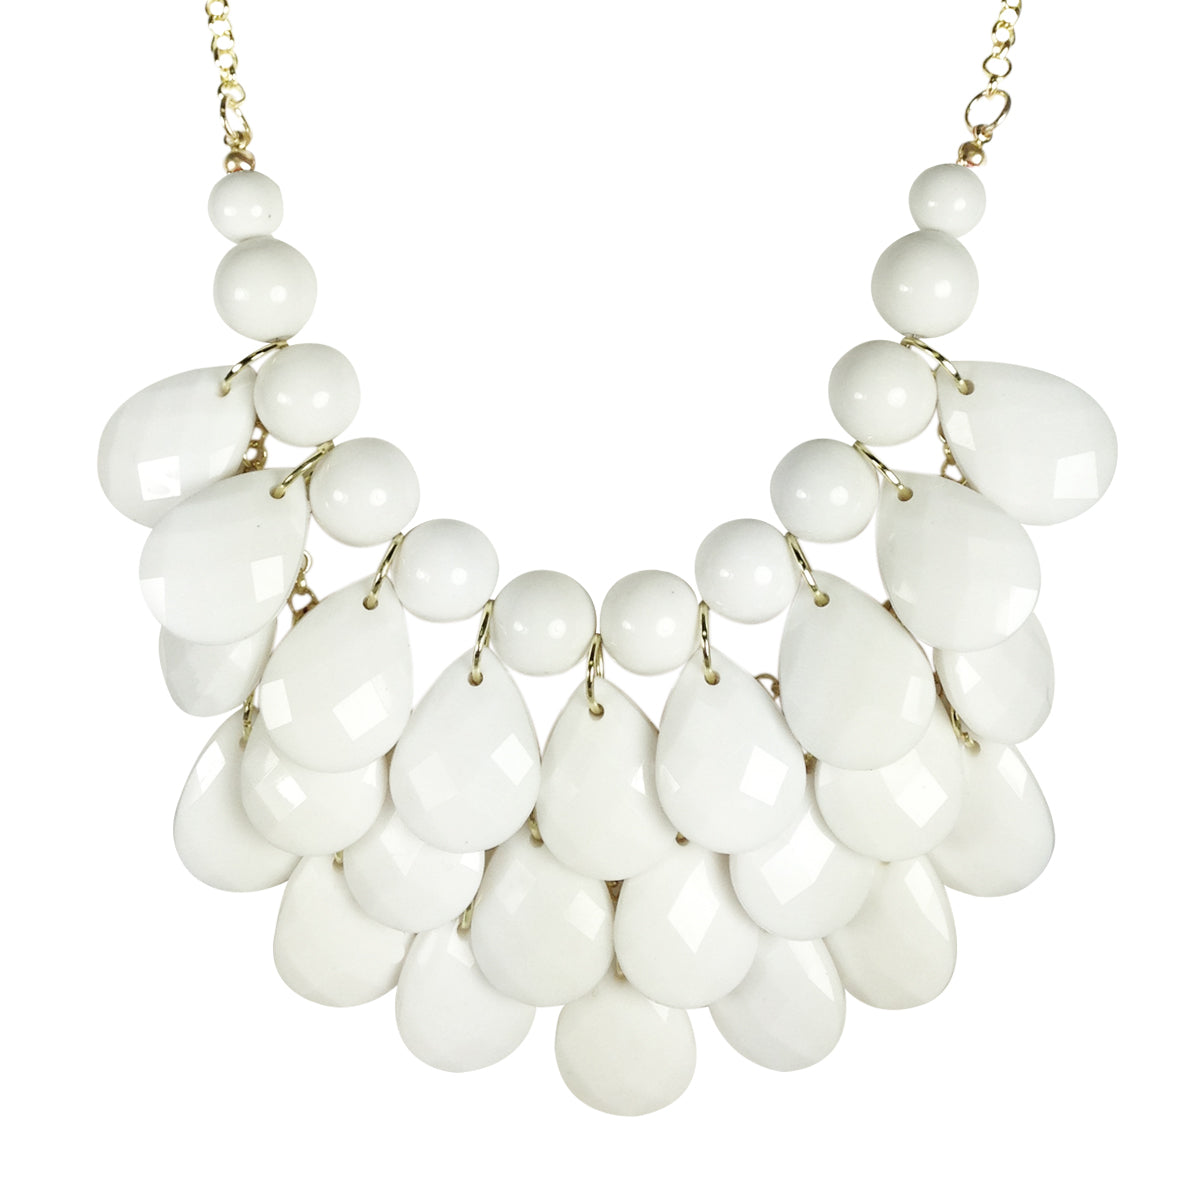 Teardrop Statement Bib Necklace